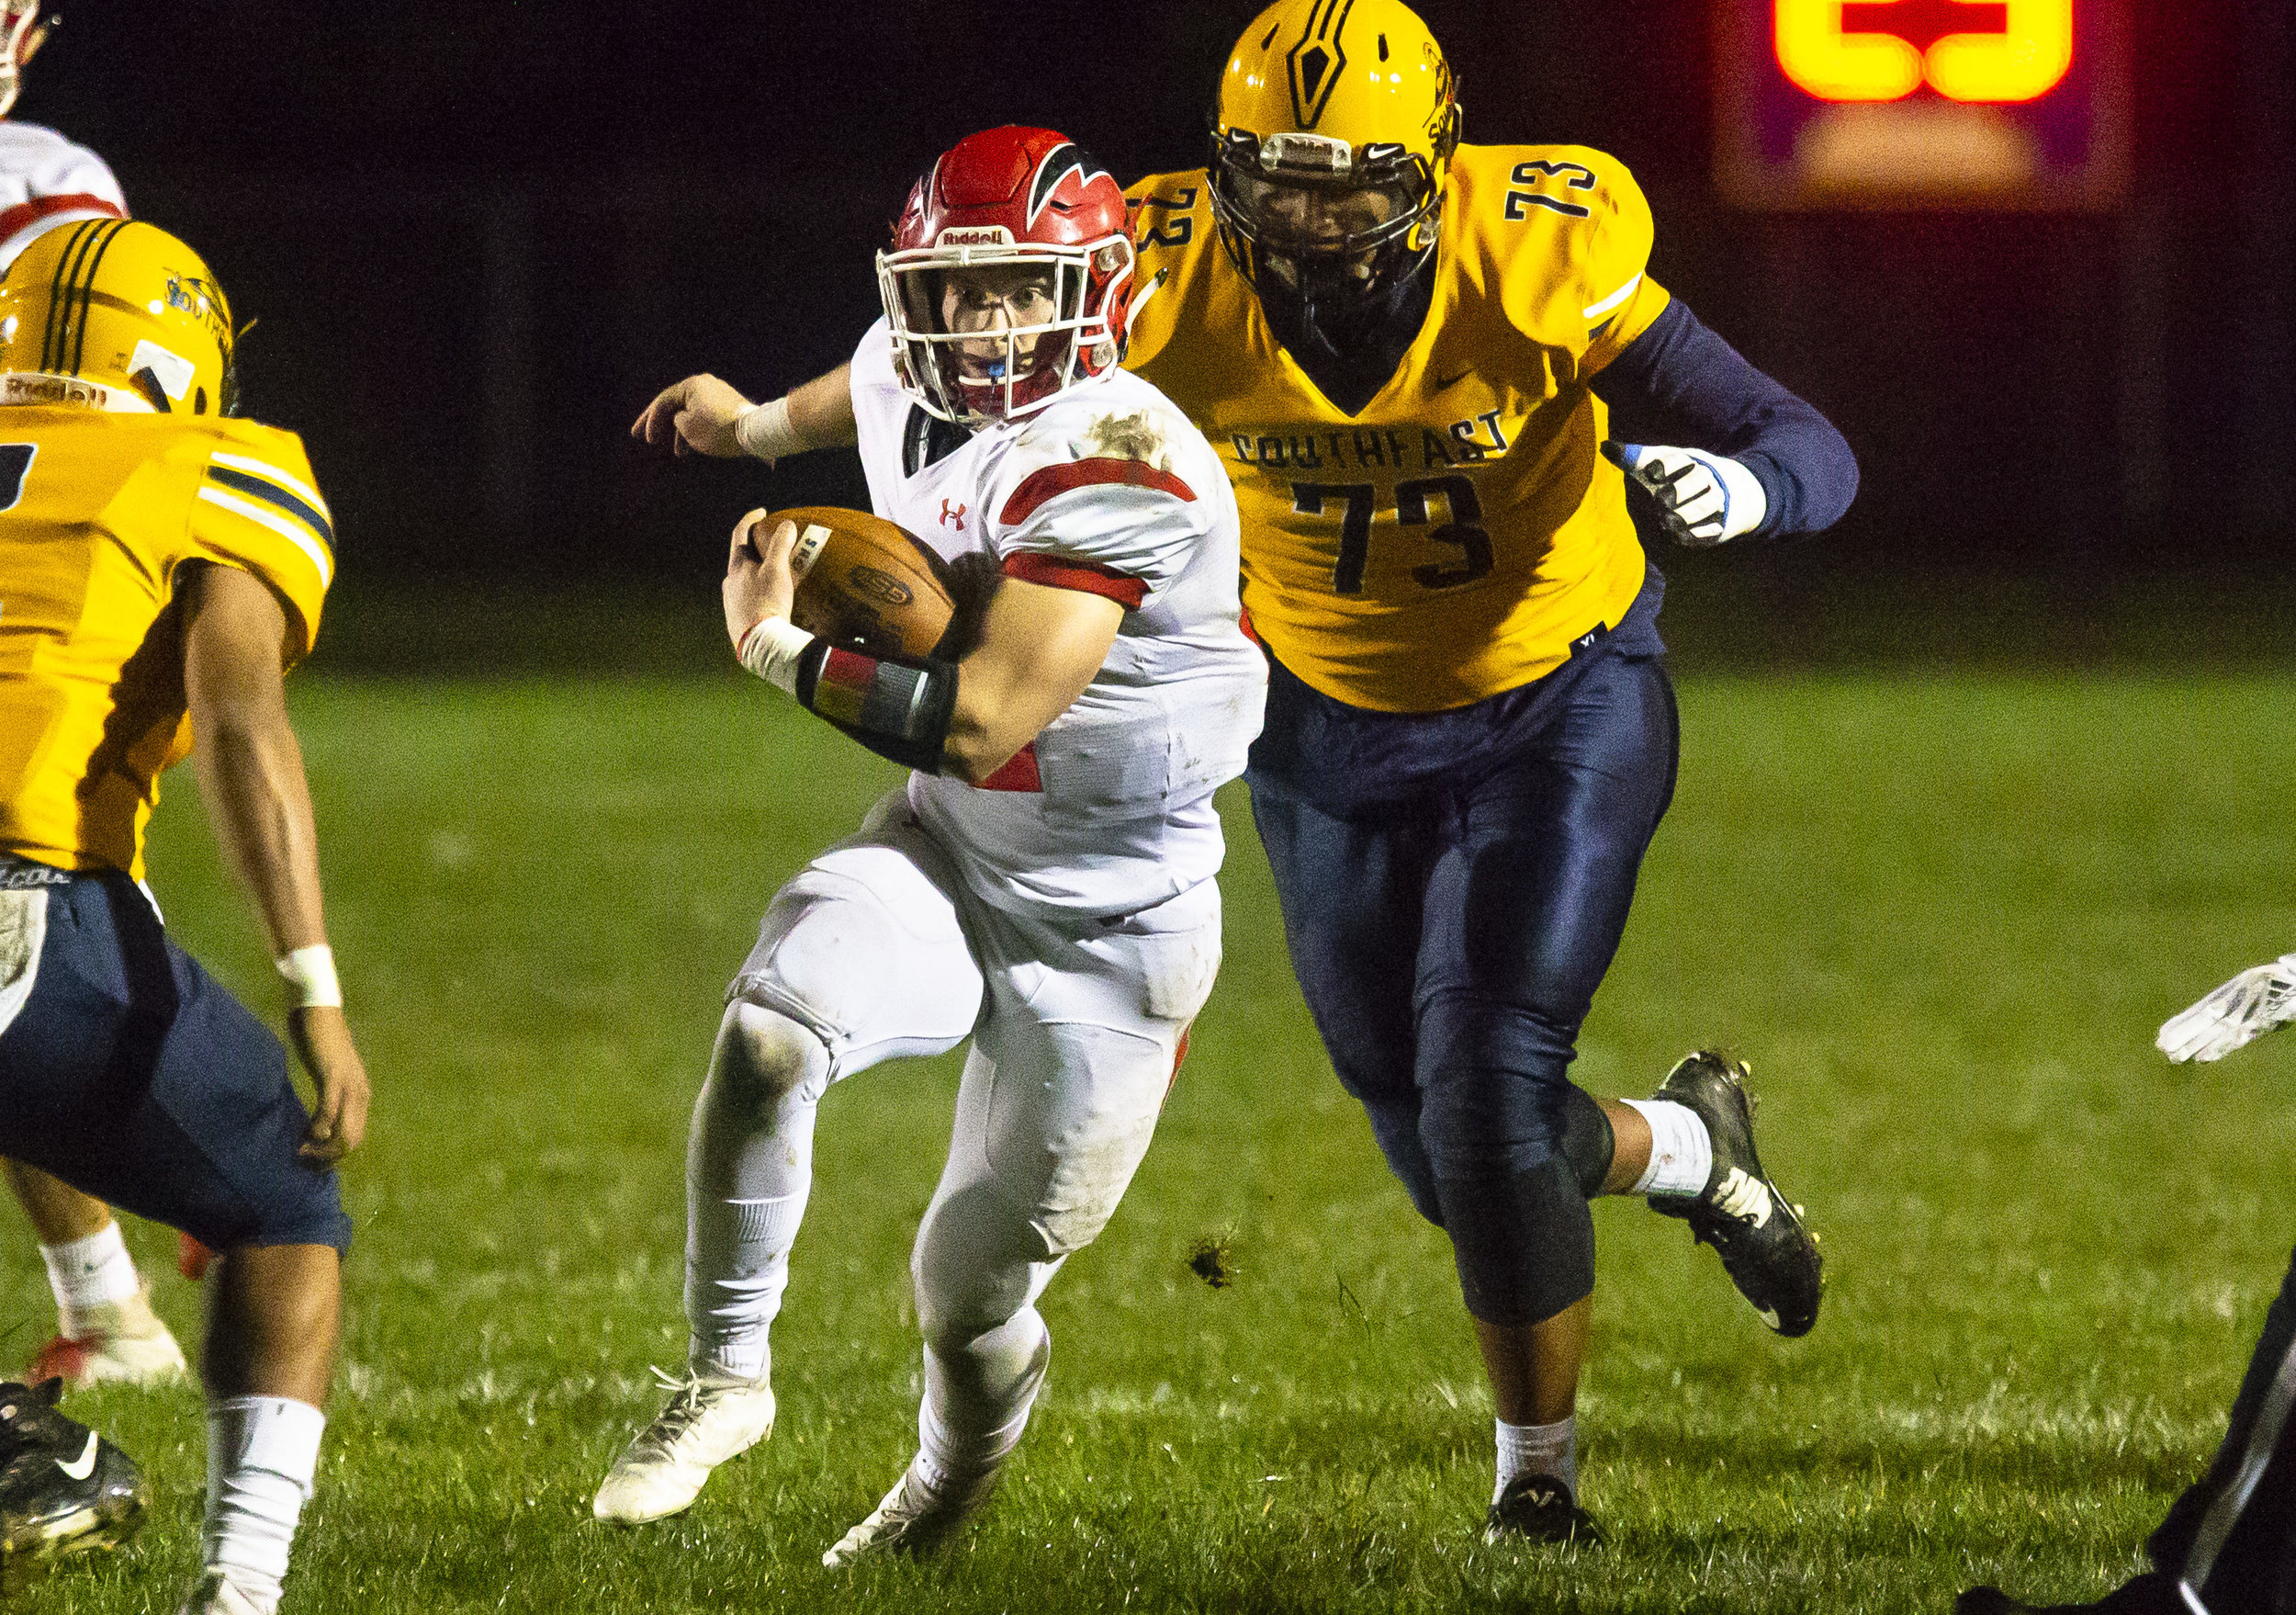 Glenwood's Austin Schiff breaks through the Southeast defense with the Spartan's Herb McMath in pursuit Friday, Oct. 12, 2018 at Southeast High School's Spartan Field in Springfield, Ill. [Rich Saal/The State Journal-Register]